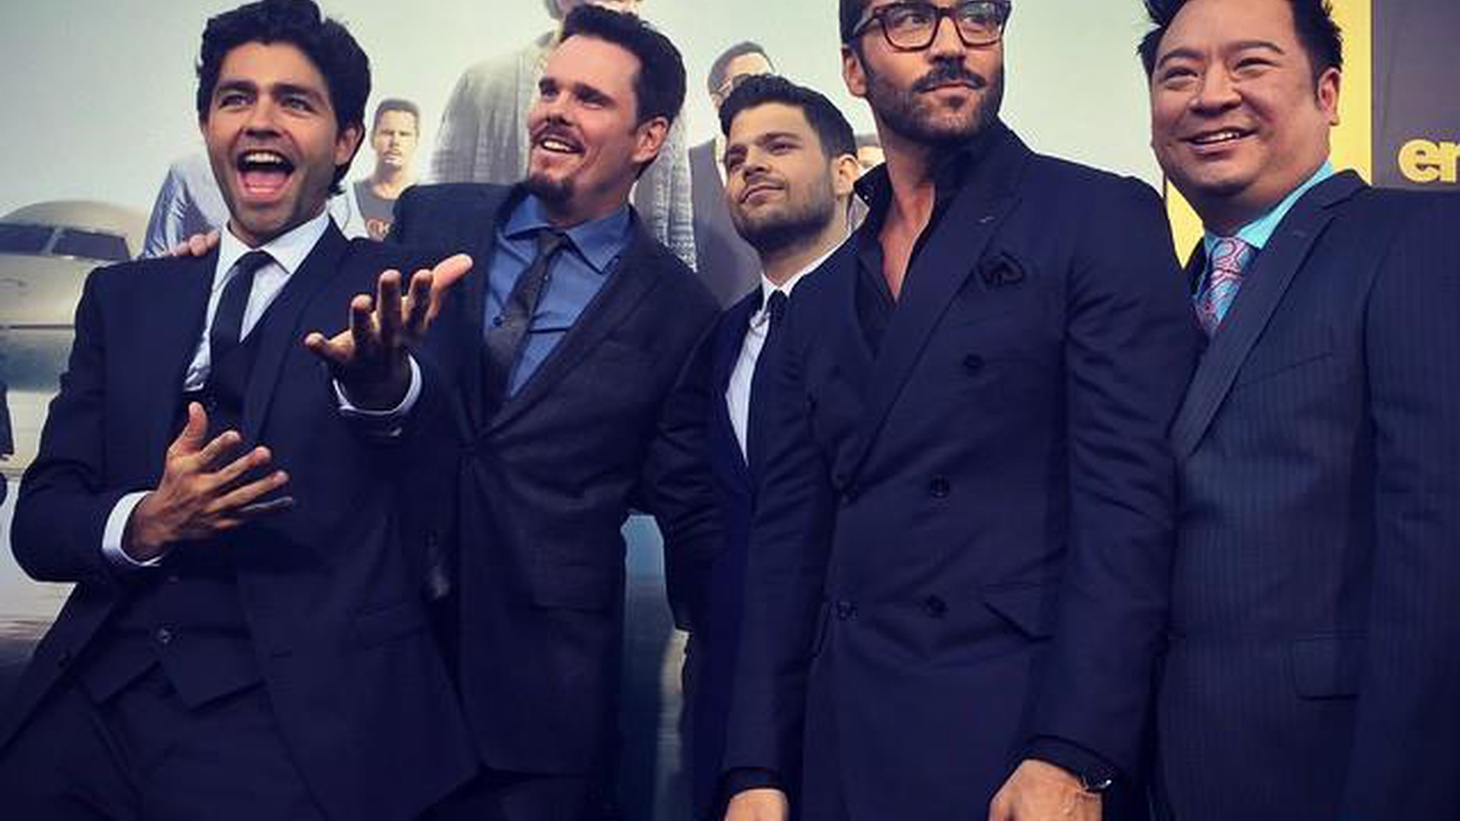 Charm has curdled into smarm in the big-screen version of Entourage.